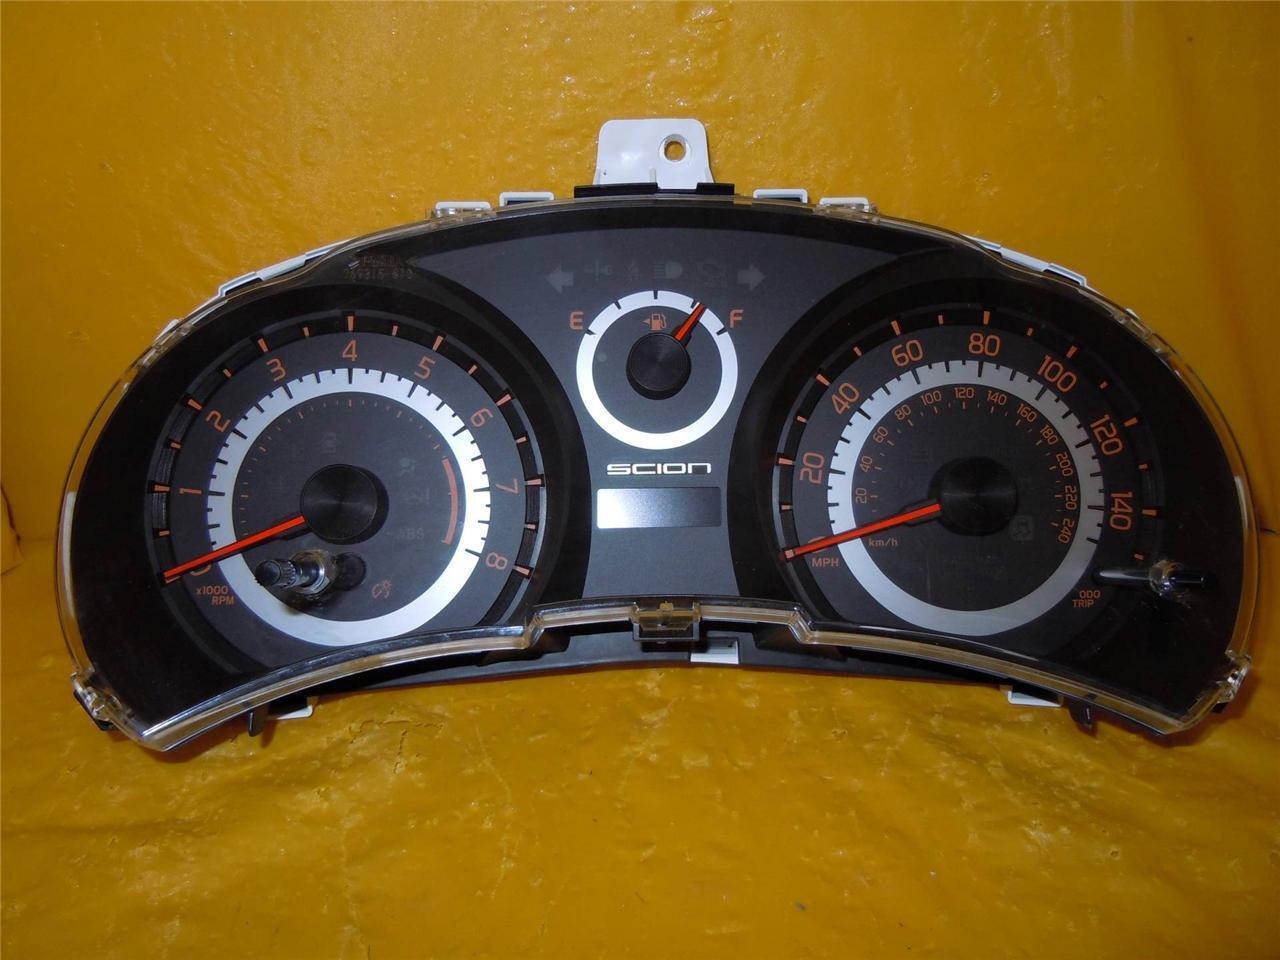 2011 2012 2013 Scion TC Speedometer Instrument Cluster Dash Panel Gauges 1999